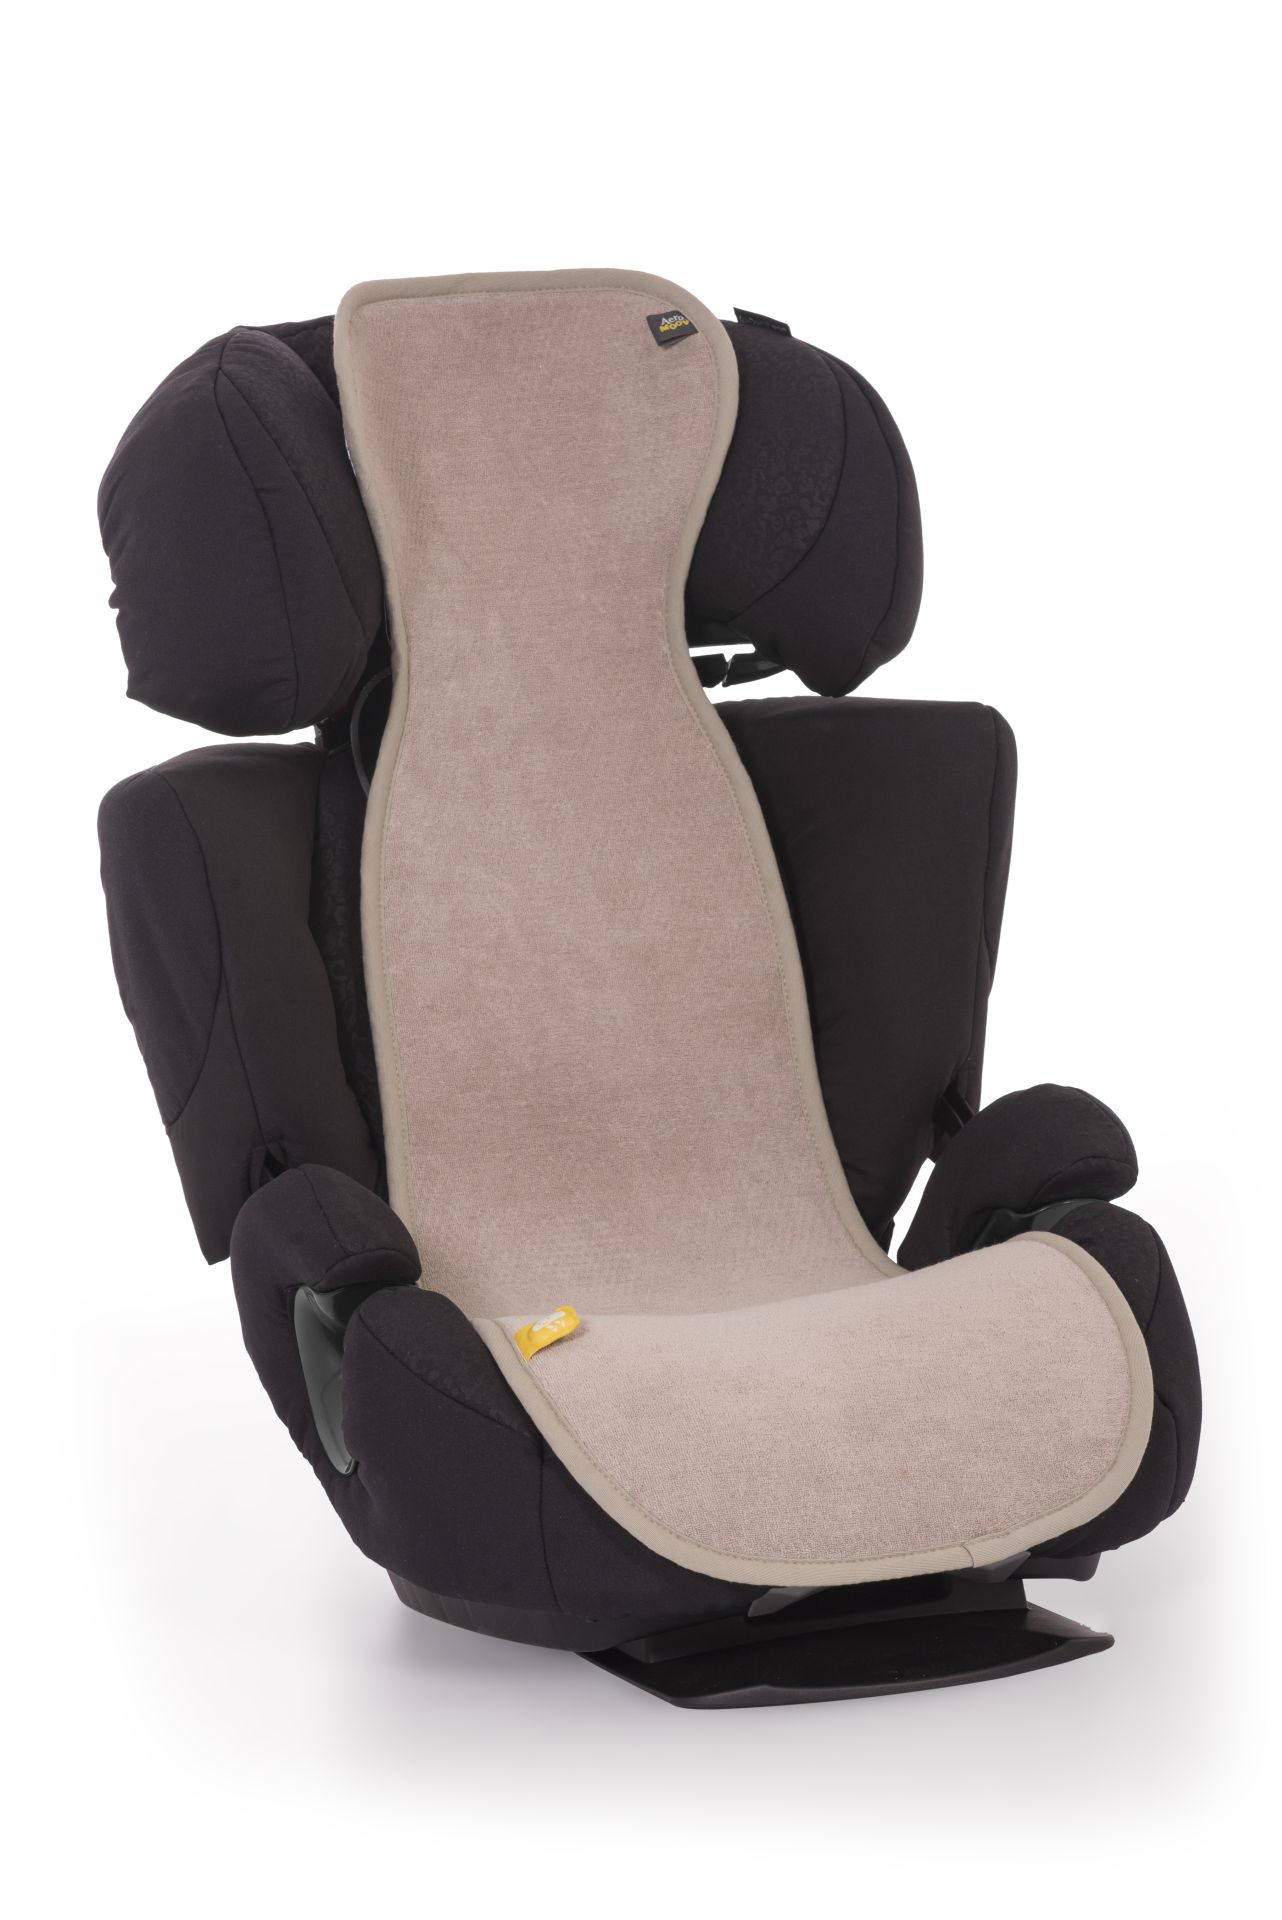 aeromoov air layer for car seats 15 36 kg 2018 sand buy at kidsroom car seats. Black Bedroom Furniture Sets. Home Design Ideas